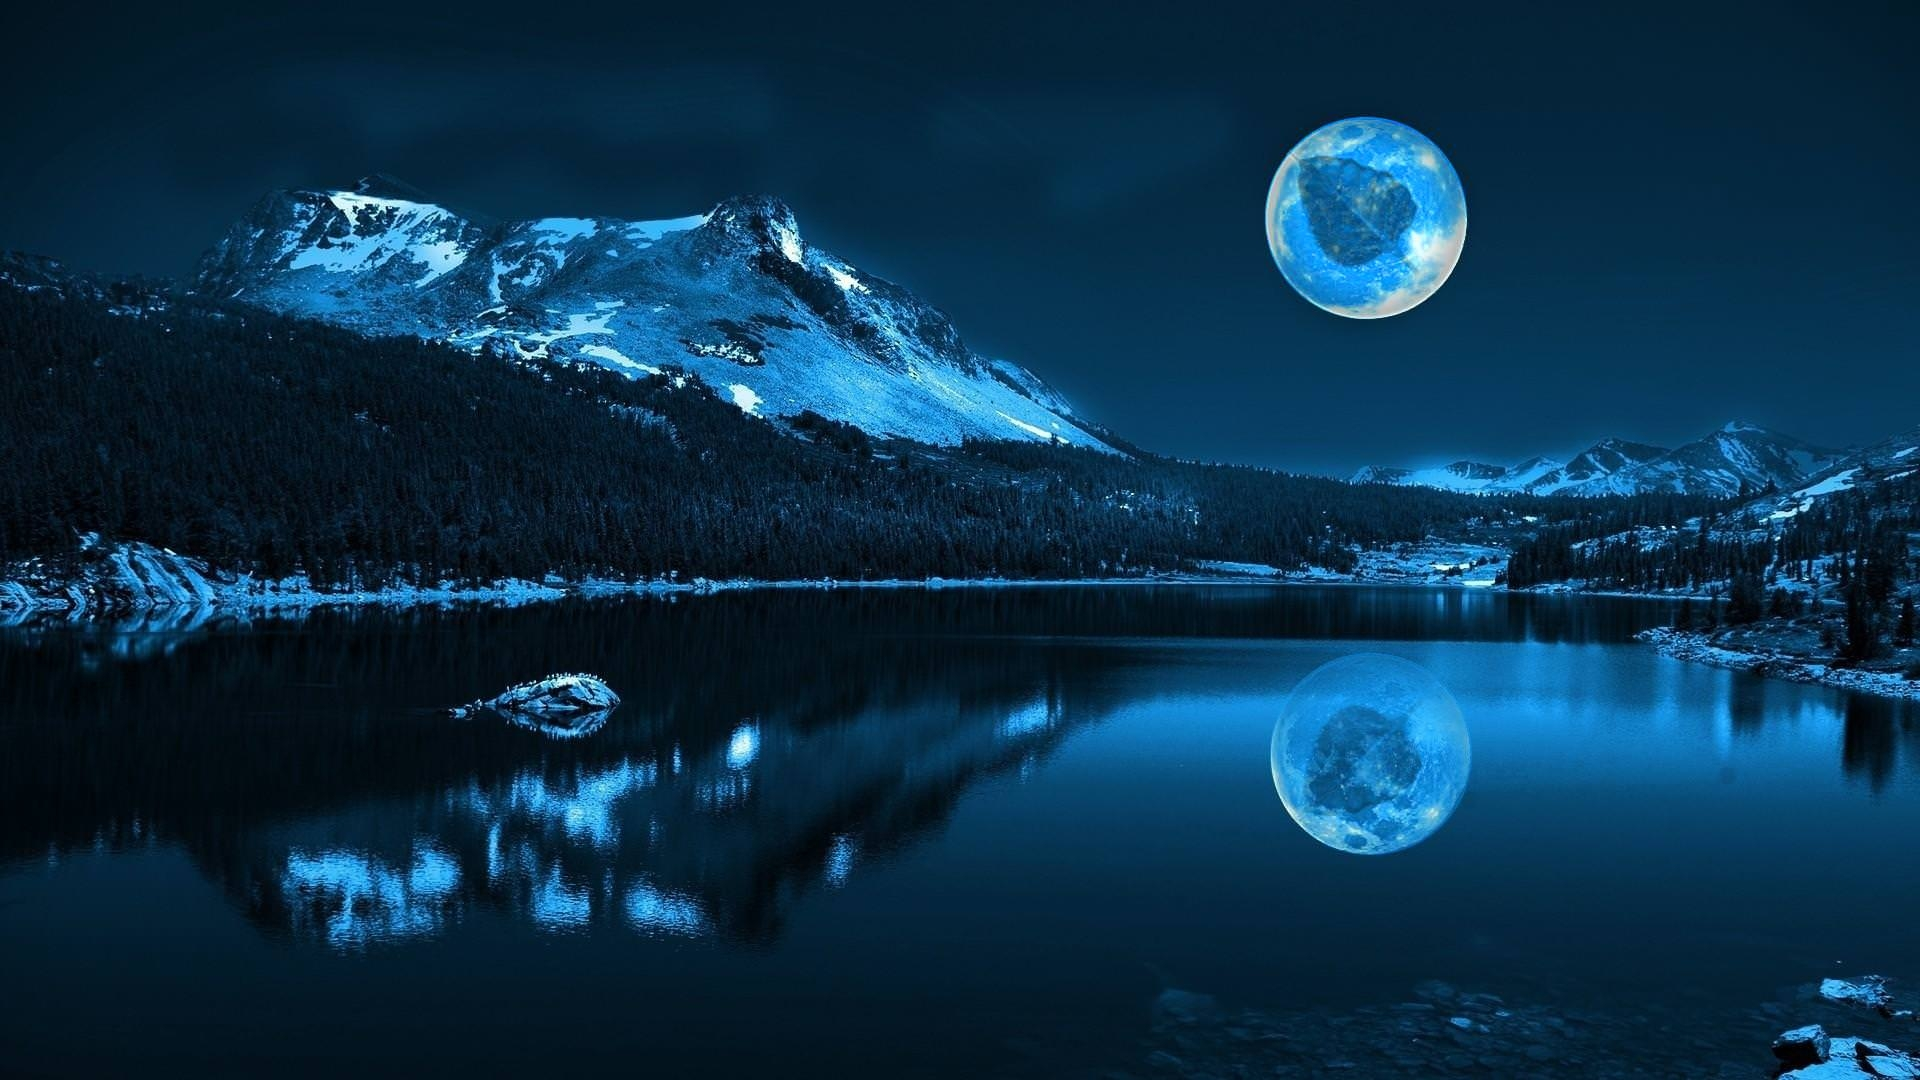 moon-background_ with its reflection